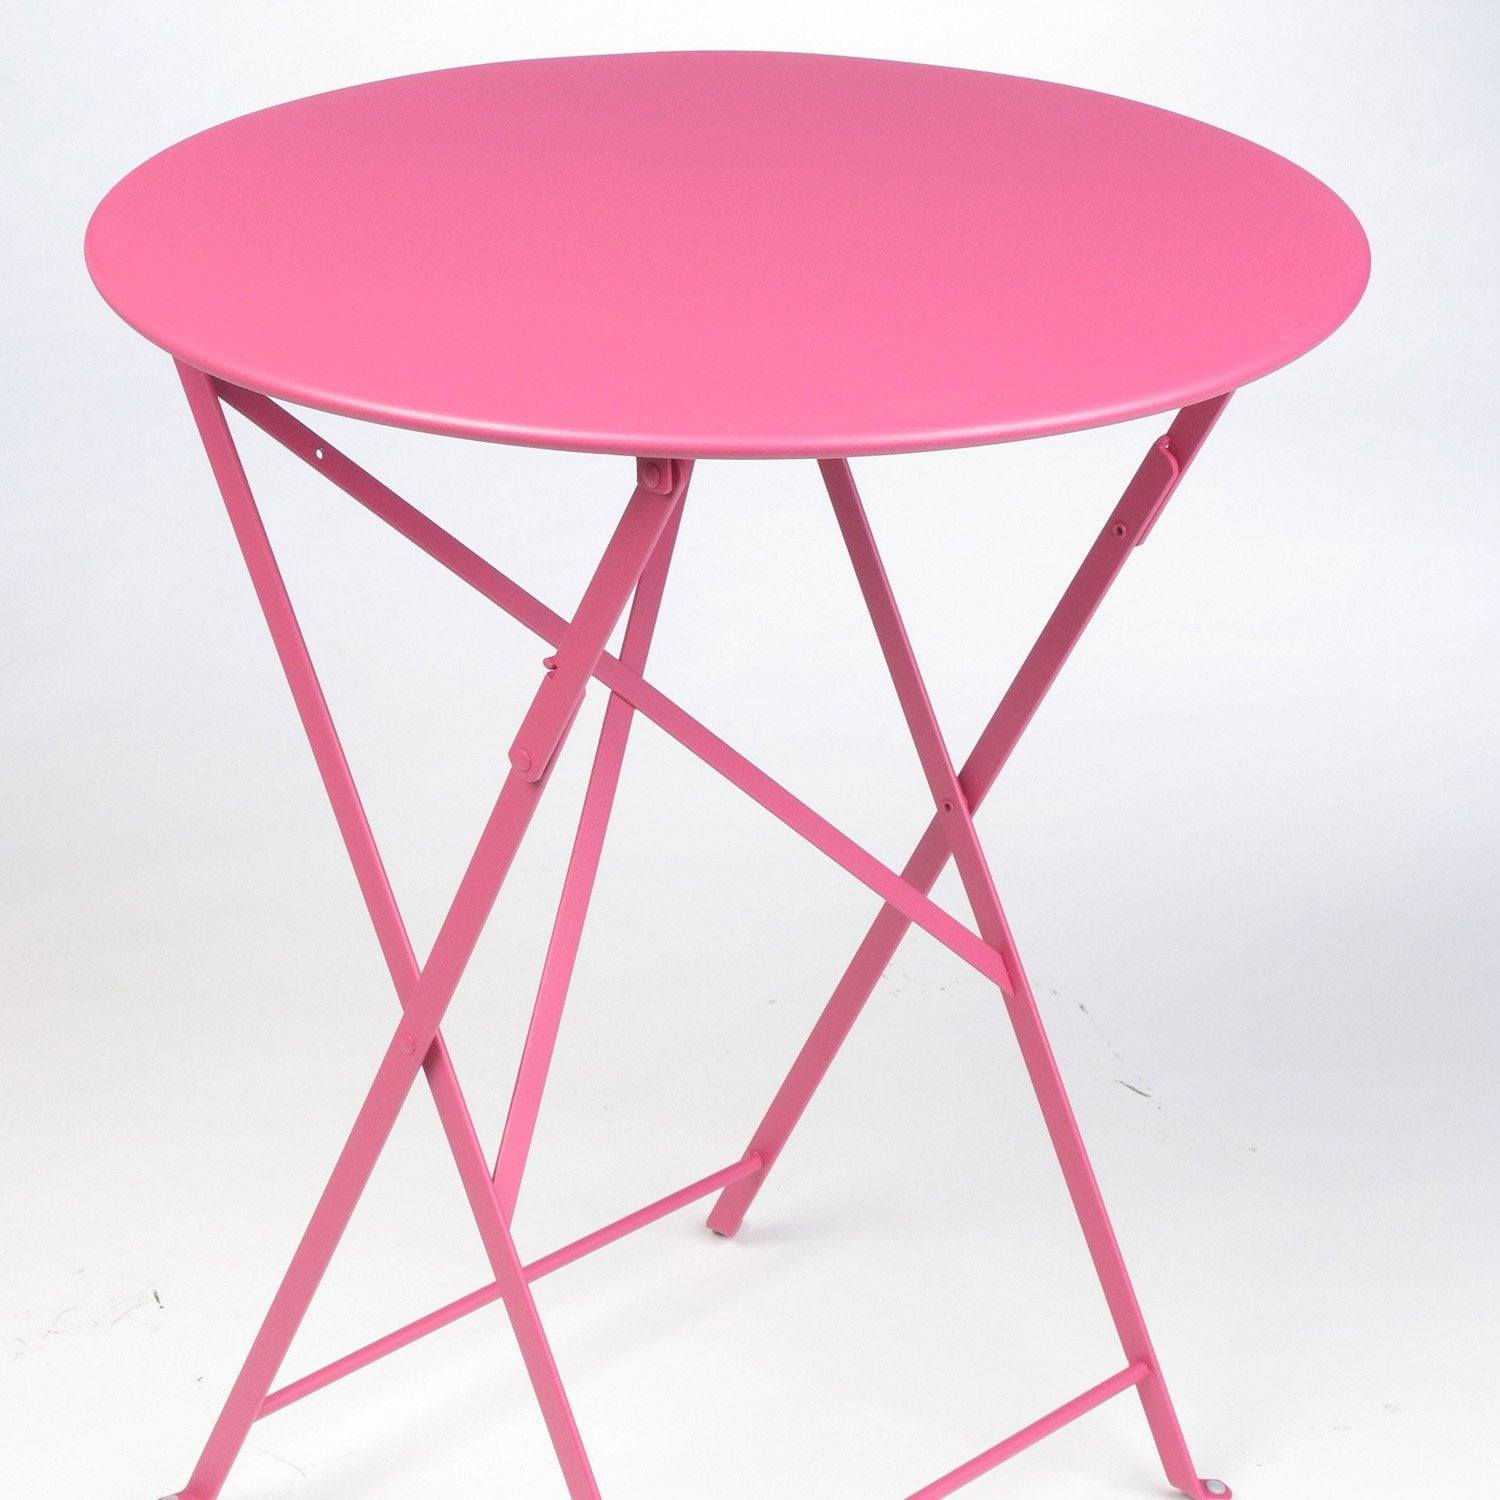 table de jardin fermob bistro ronde fuchsia 2 personnes leroy merlin. Black Bedroom Furniture Sets. Home Design Ideas